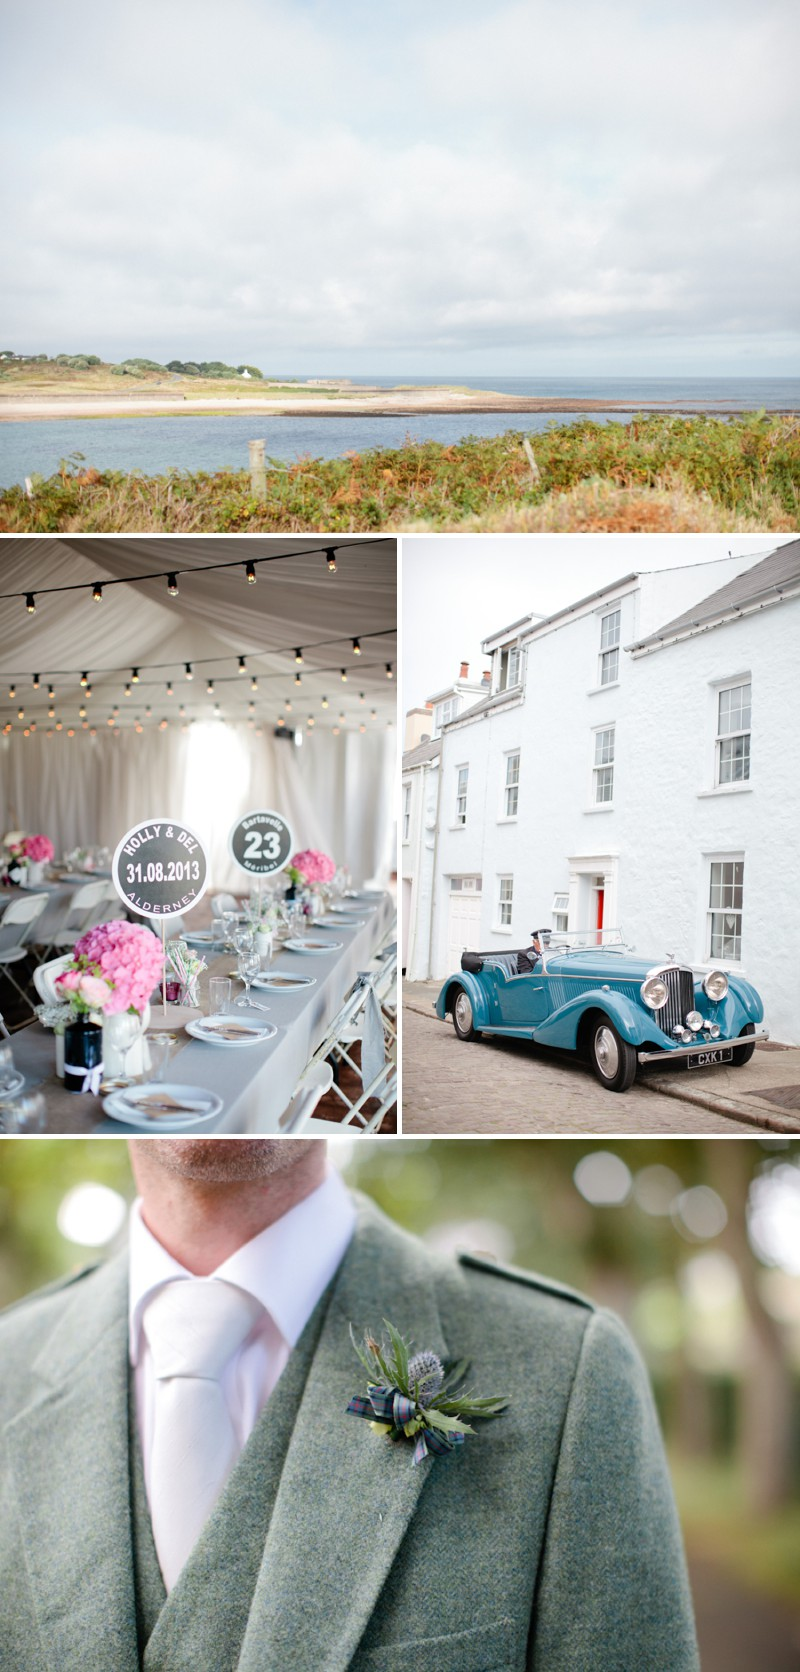 A Rustic Marquee Wedding On The Isle Of Alderney With A Suzanne Neville Dress And A Jenny Packham Acacia Headpiece With A Hydrangea Bouquet And A Skiing Theme Photographed By Helen Cawte. 0001 A Skiing Adventure In Alderney.